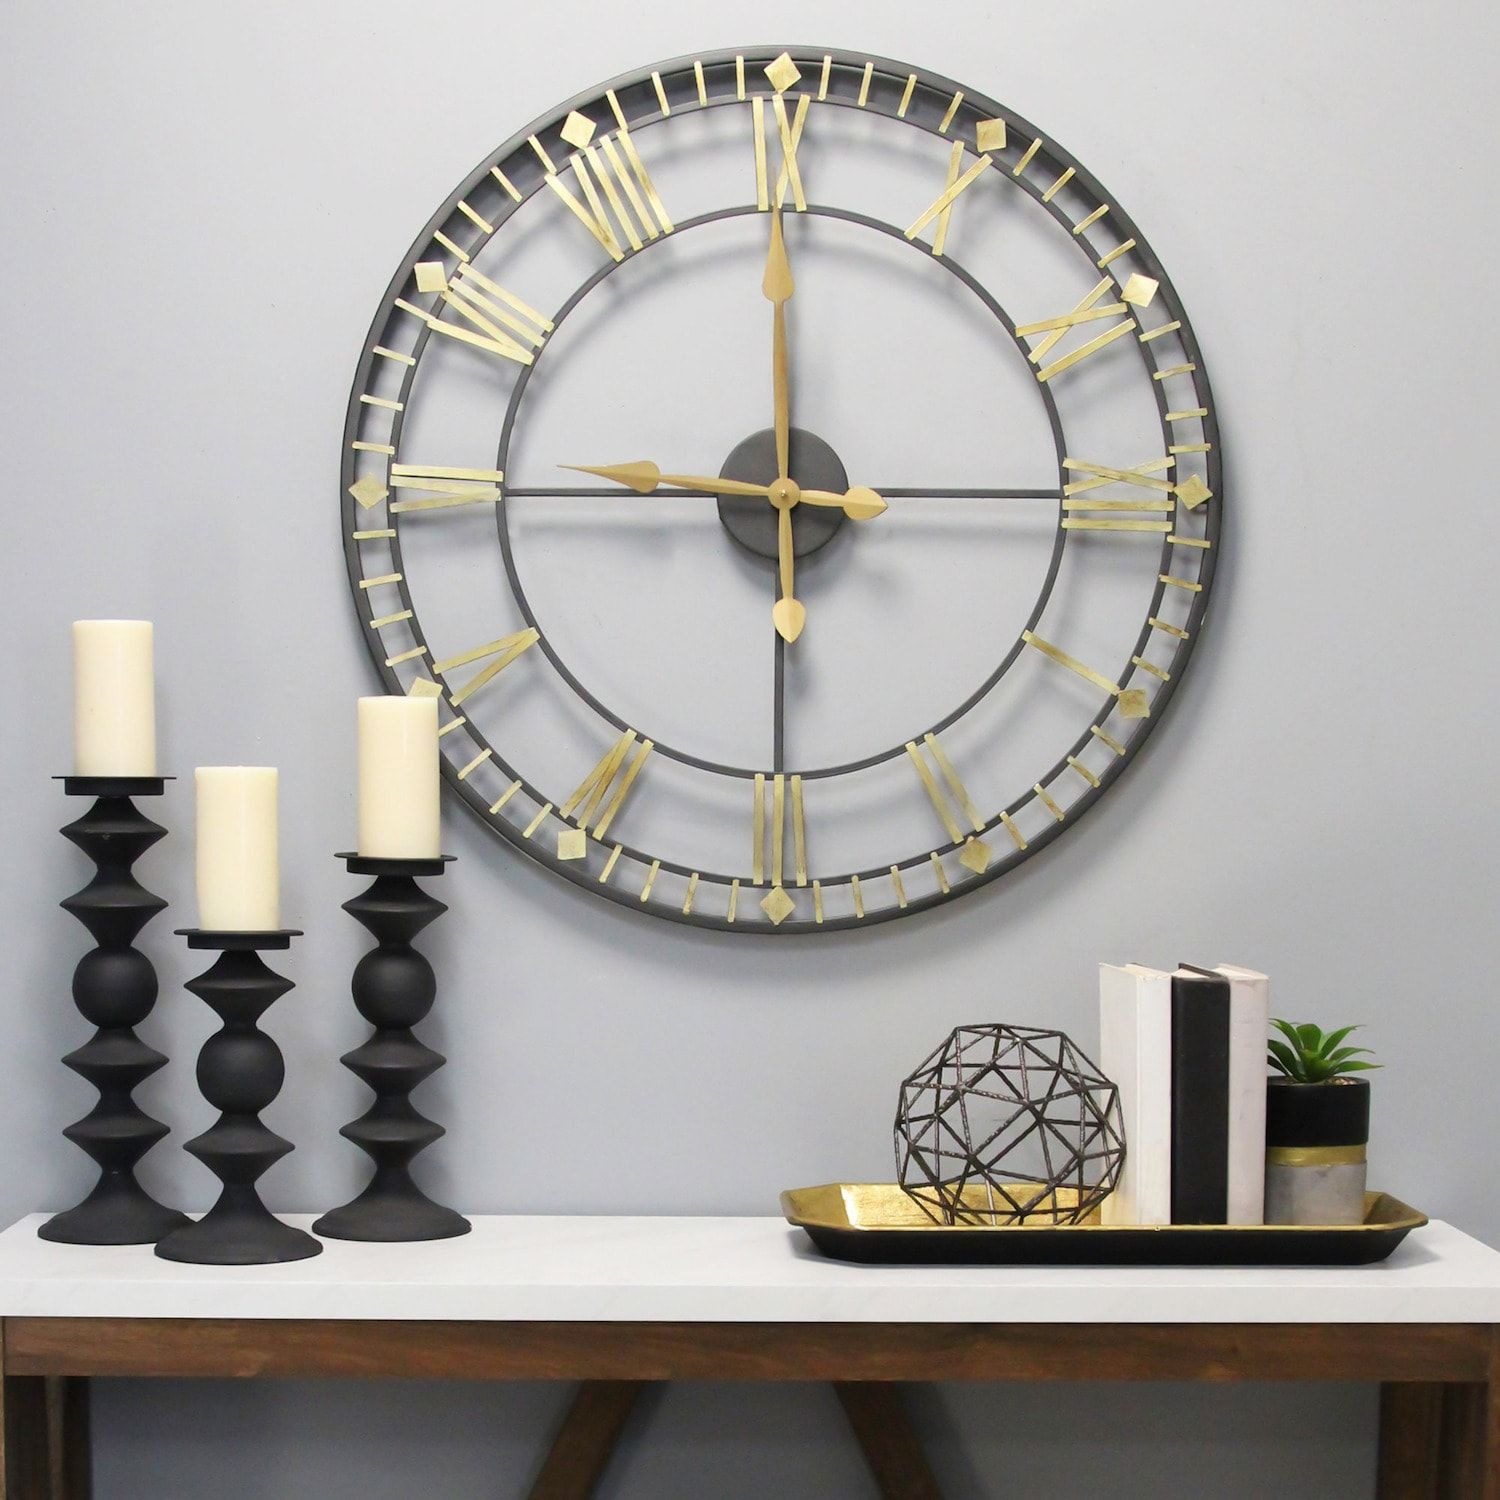 Stratton Home Decor Oversized Industrial Austin Wall Clock In 2020 Wall Clock Metal Candlesticks Clock Wall Decor